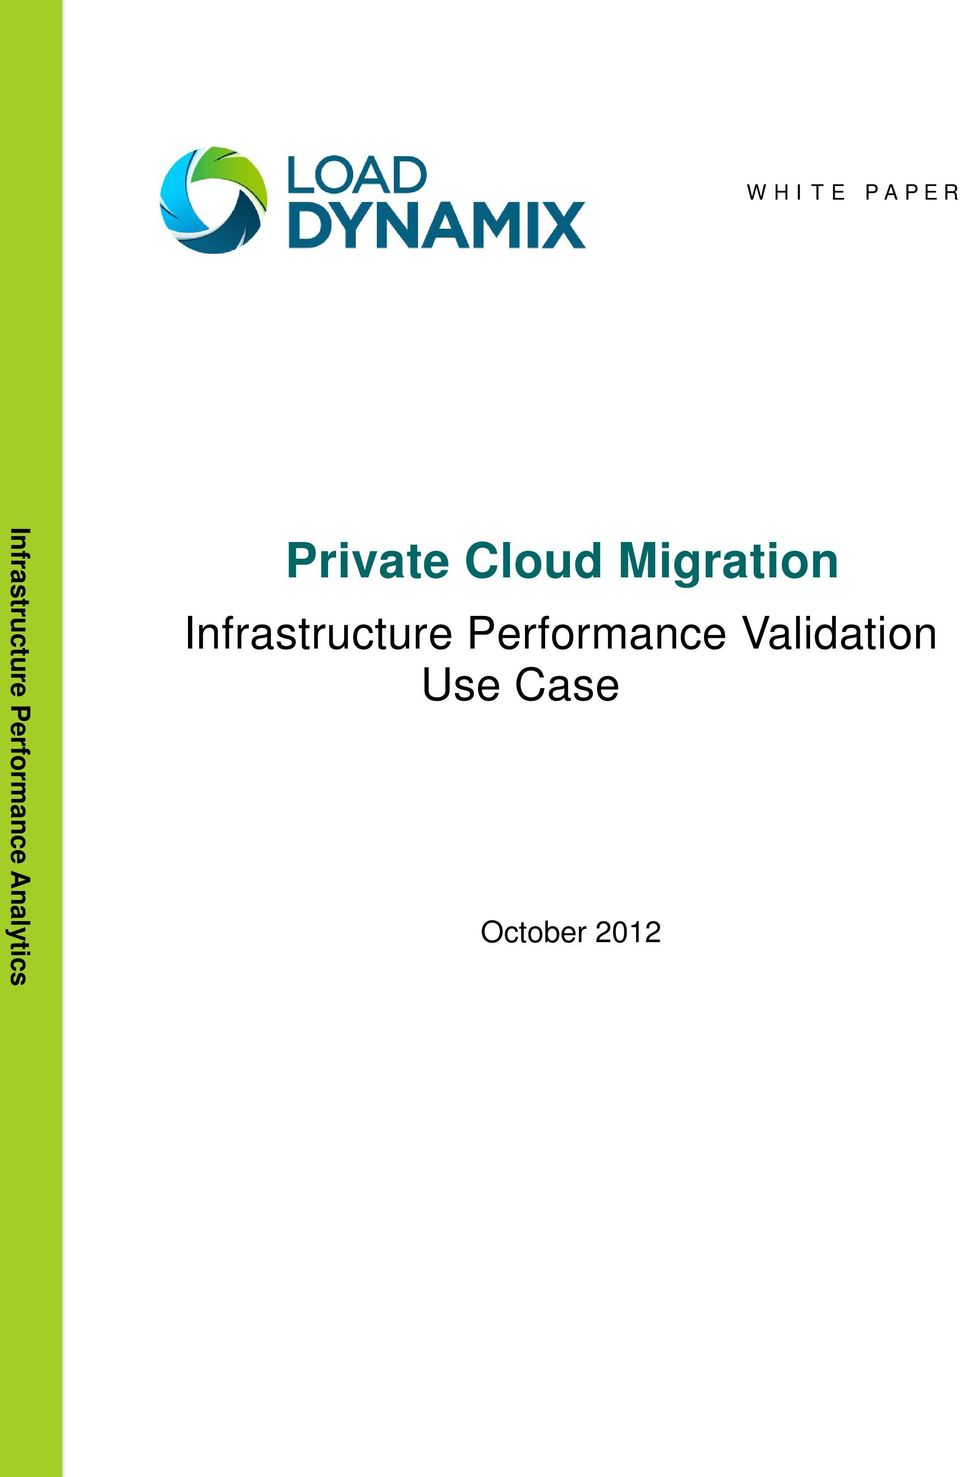 Cloud Migration Infrastructure